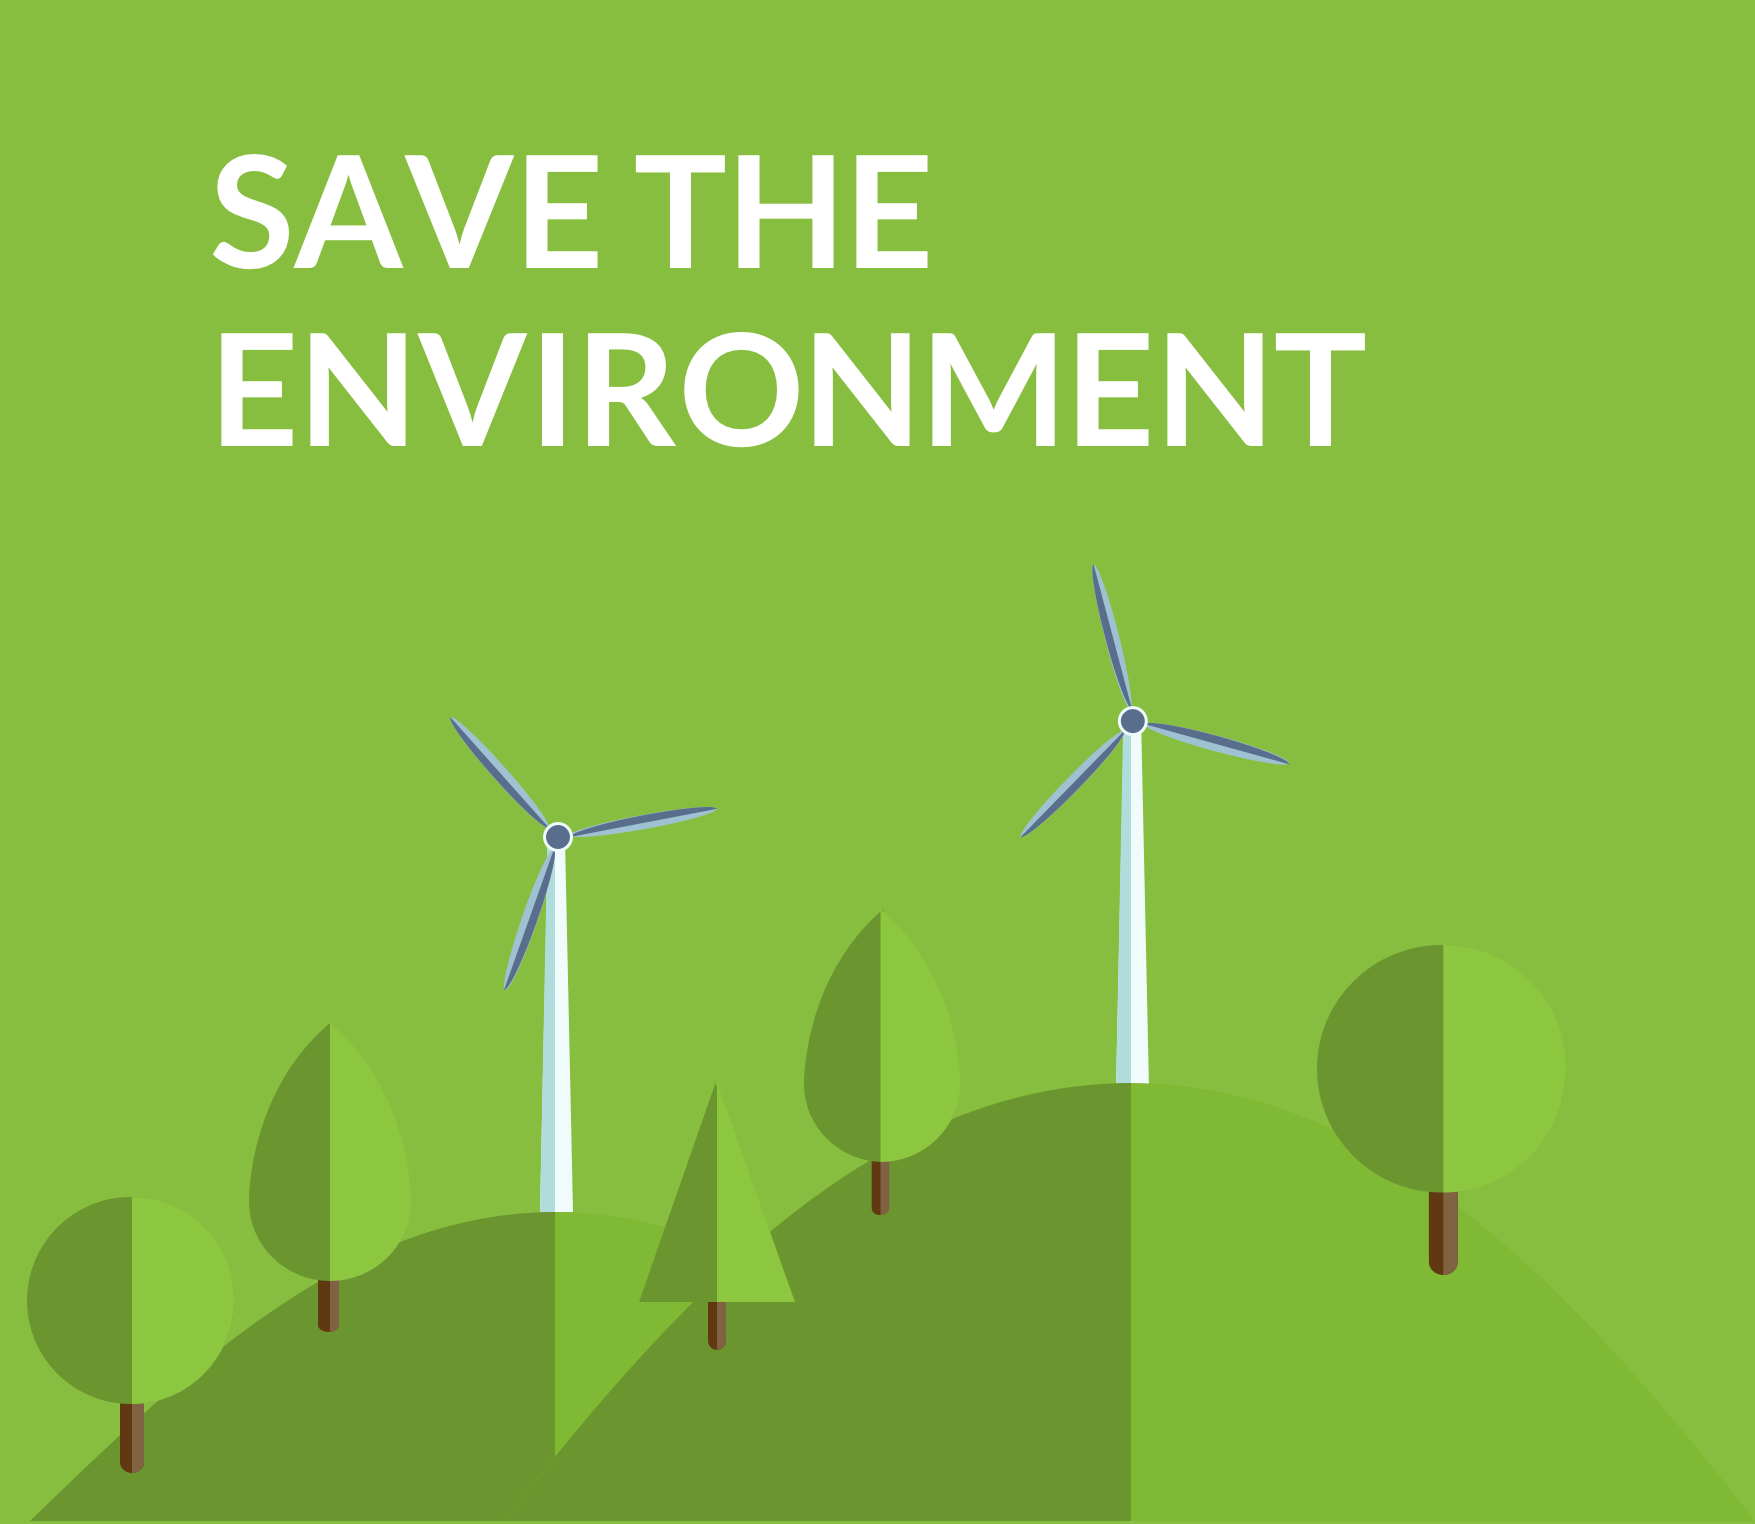 save-the-environment-green@3x.png